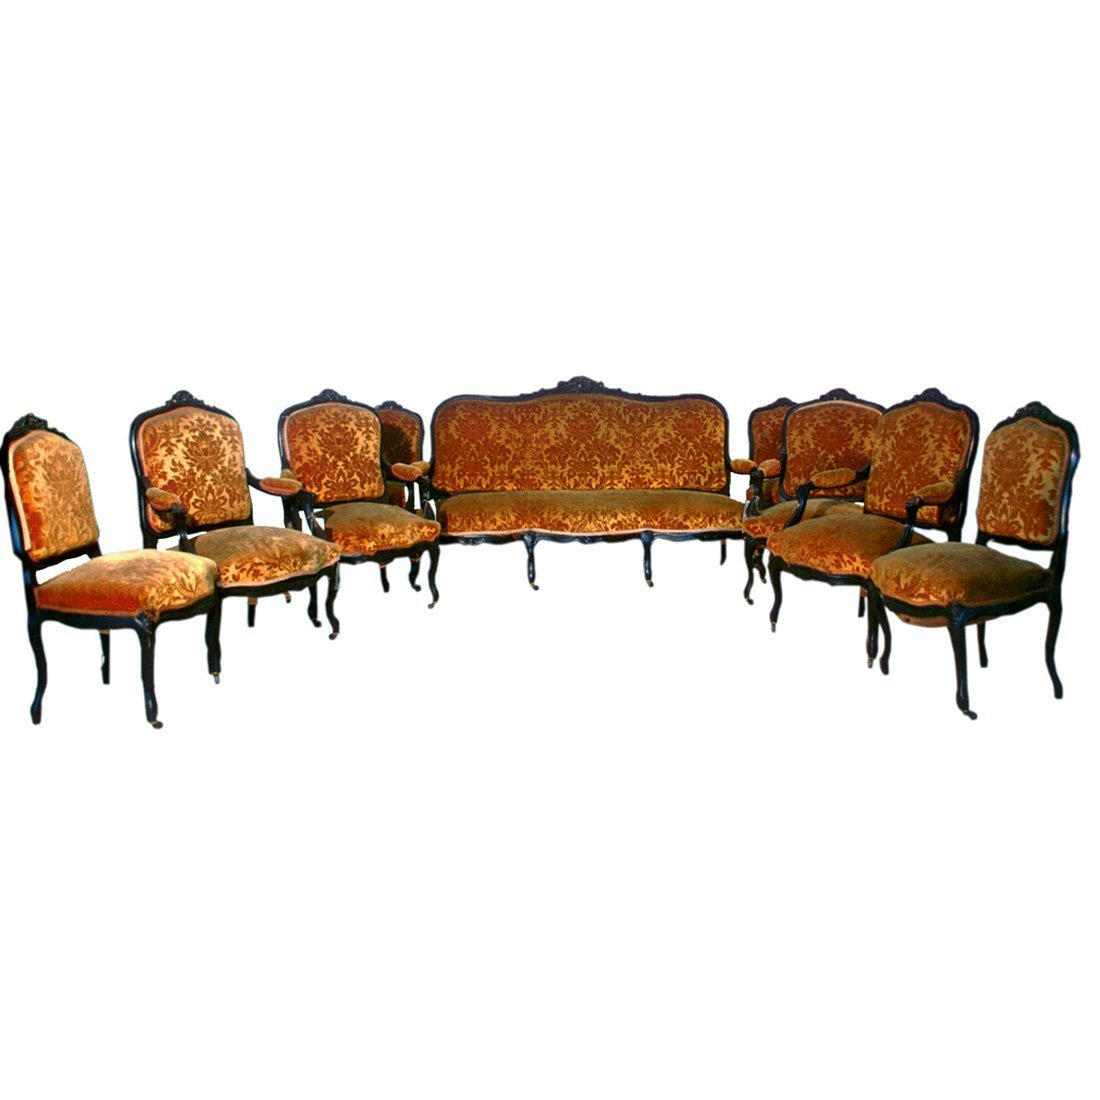 1905 9-Pc. French Parlor Ste in Walnut w/ Carved